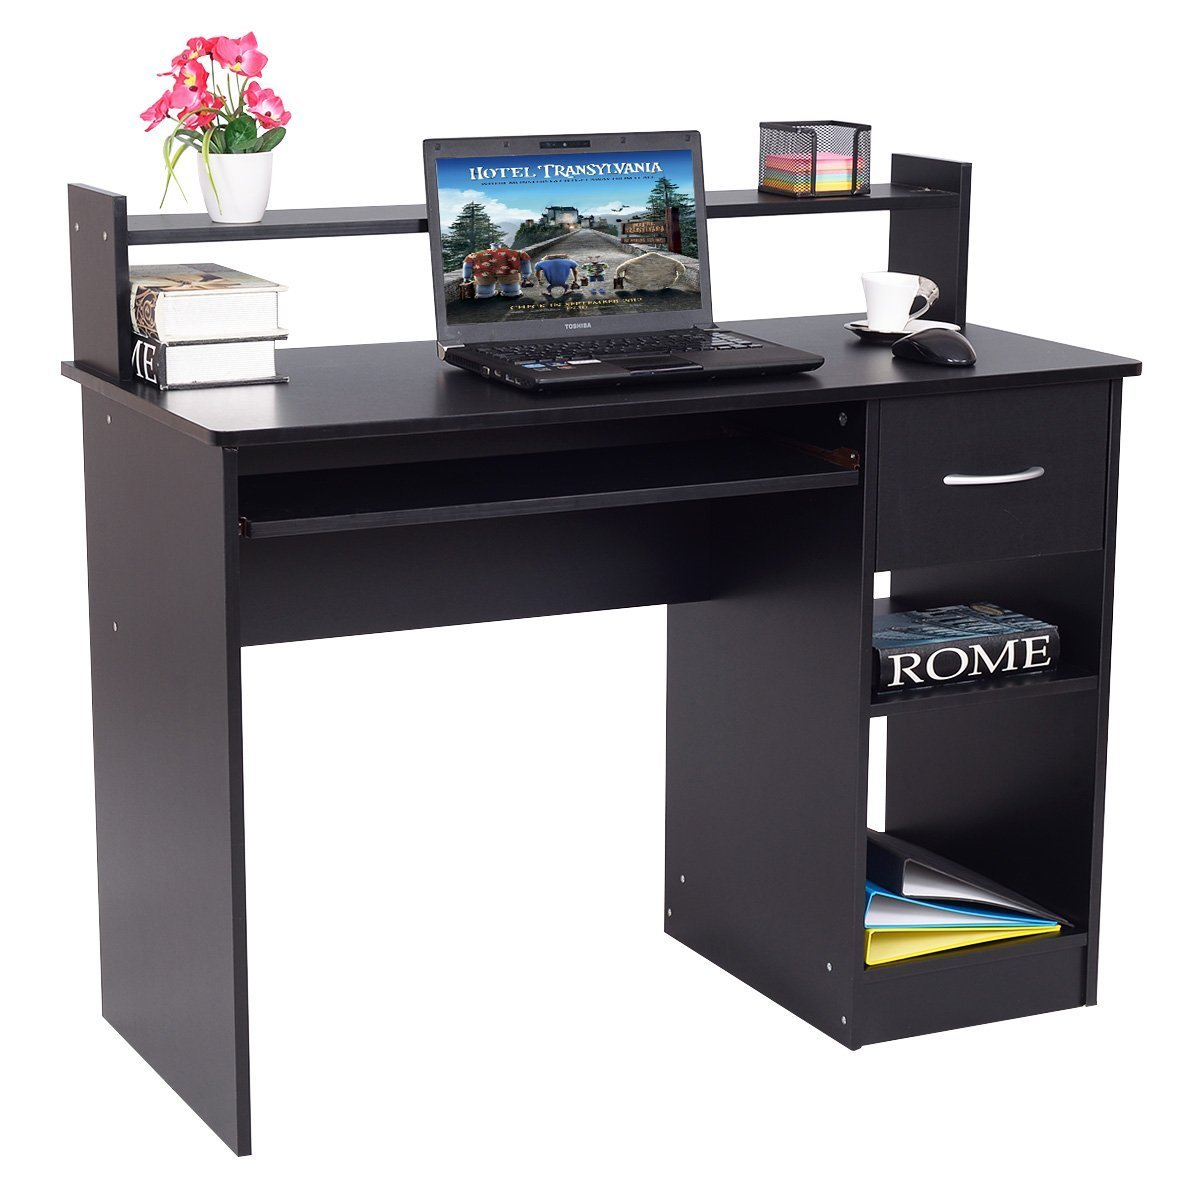 Tangkula Computer Desk Modern Home Office Furniture PC Laptop Workstation Compact Space Saving Computer Table Laptop Table with Pull-Out Keyboard Tray & Storage Shelf (Black with Drawer)